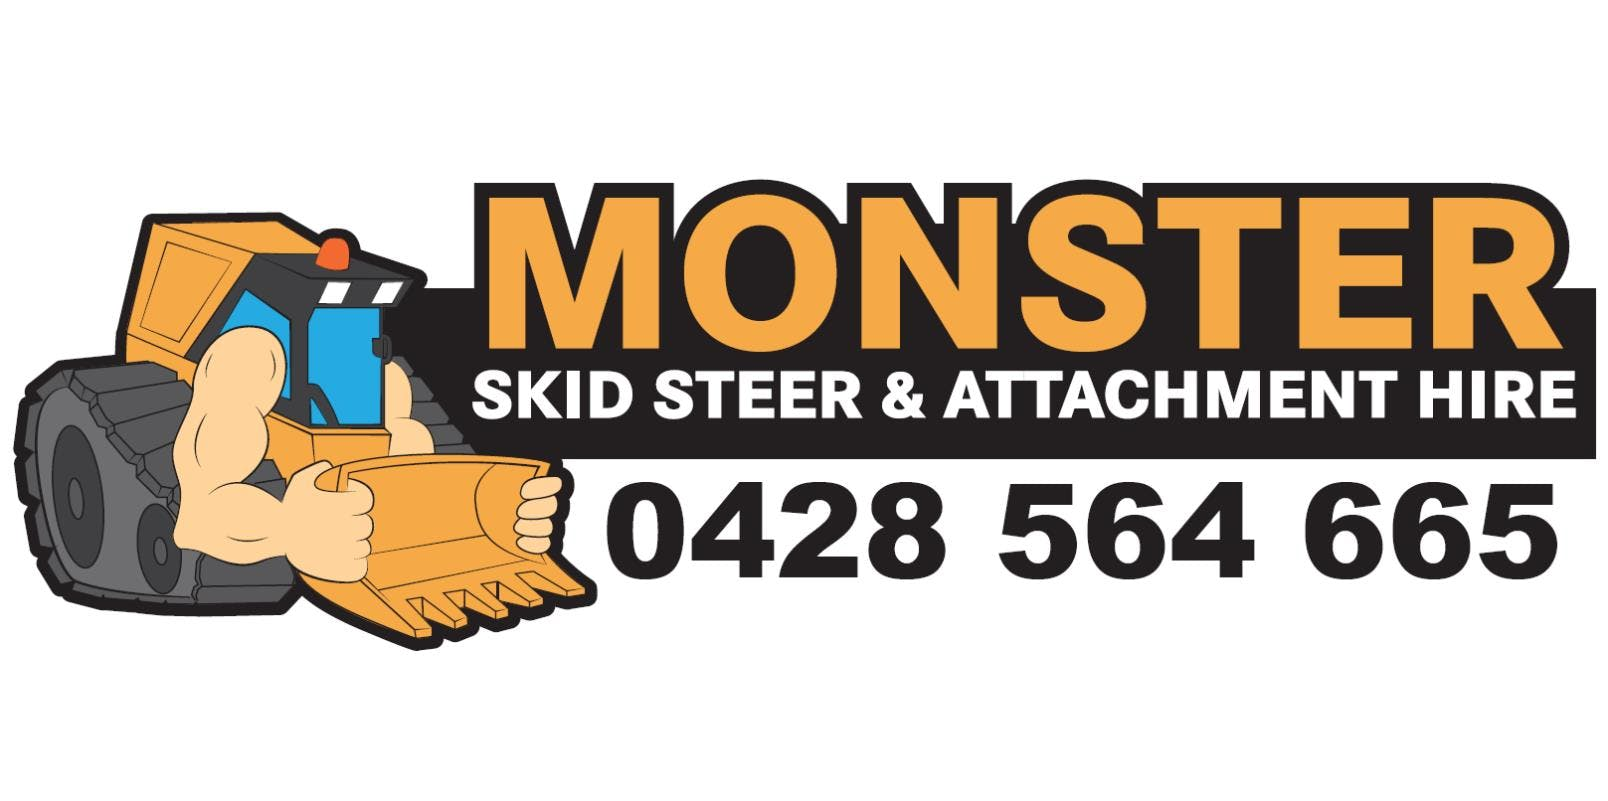 Monster Skid Steer & Attachment Hire